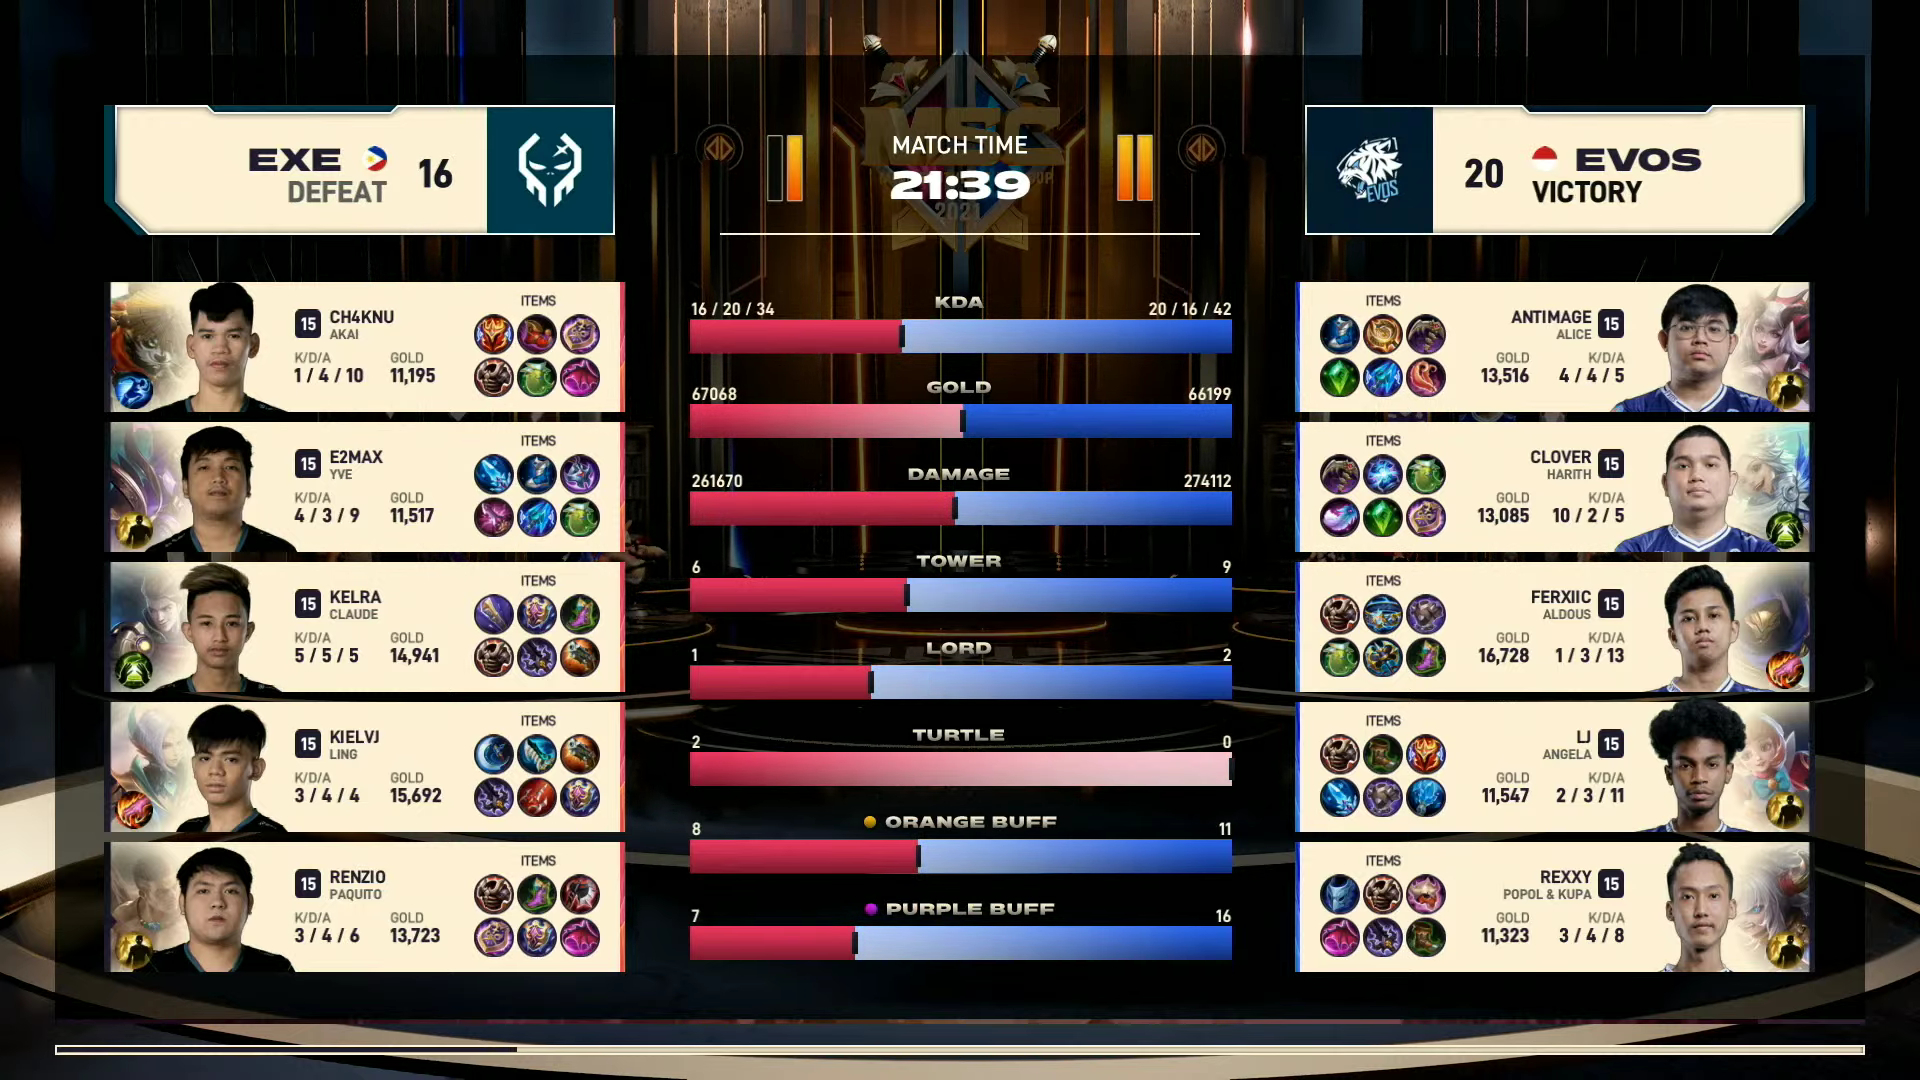 2021-MSC-Evos-def-Execration-Game-3 Kelra's gallant stand not enough as Execration drops to MSC lower bracket ESports Mobile Legends MPL-PH News  - philippine sports news